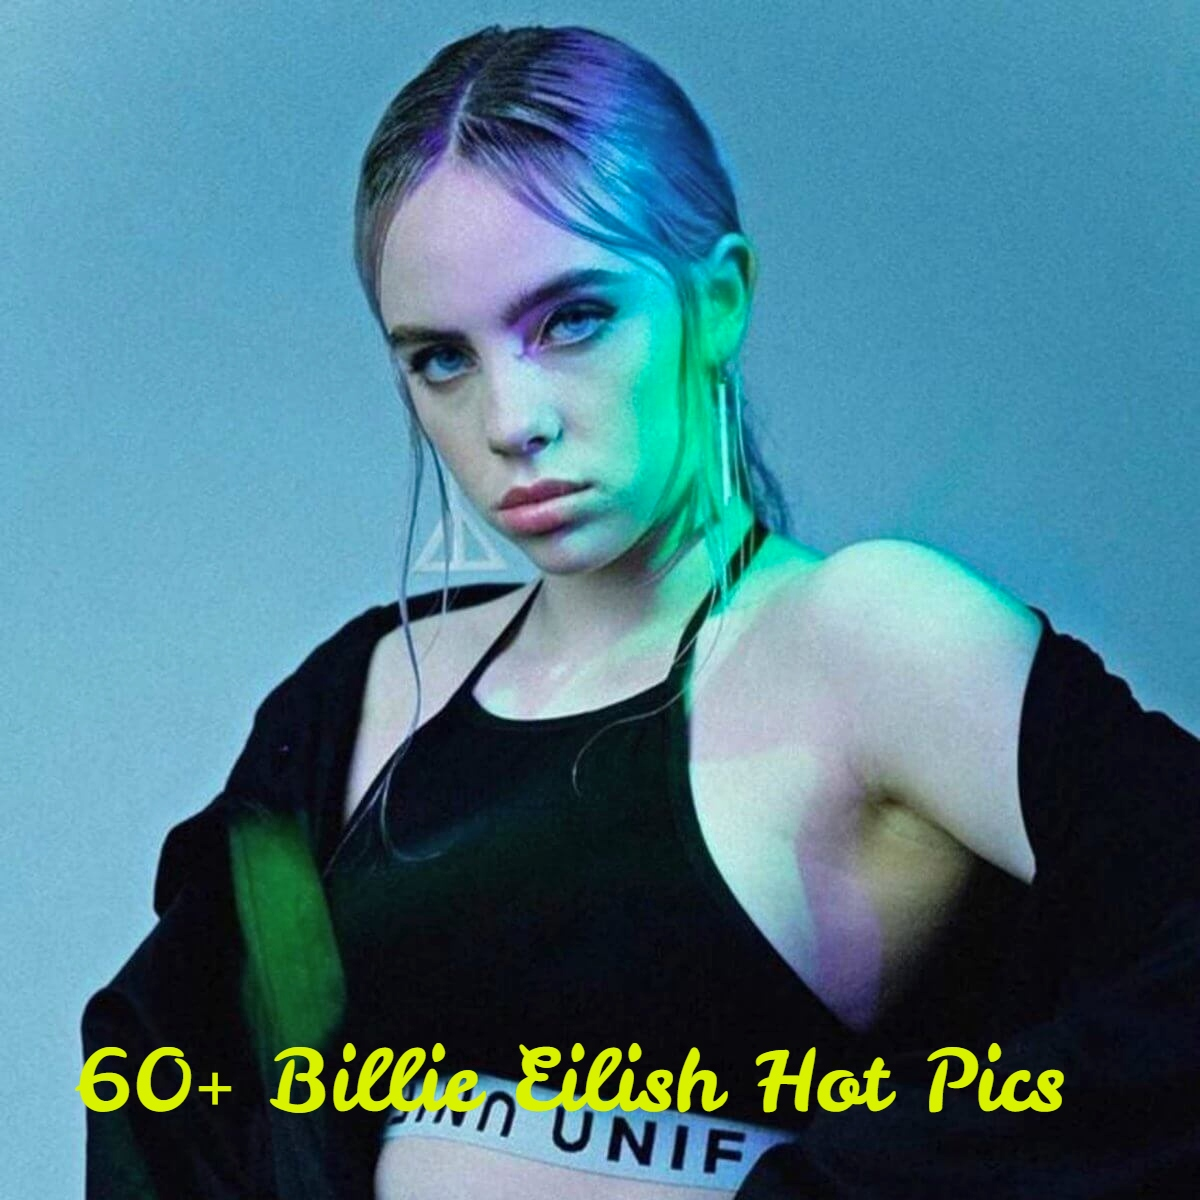 Billie Eilish hot pic